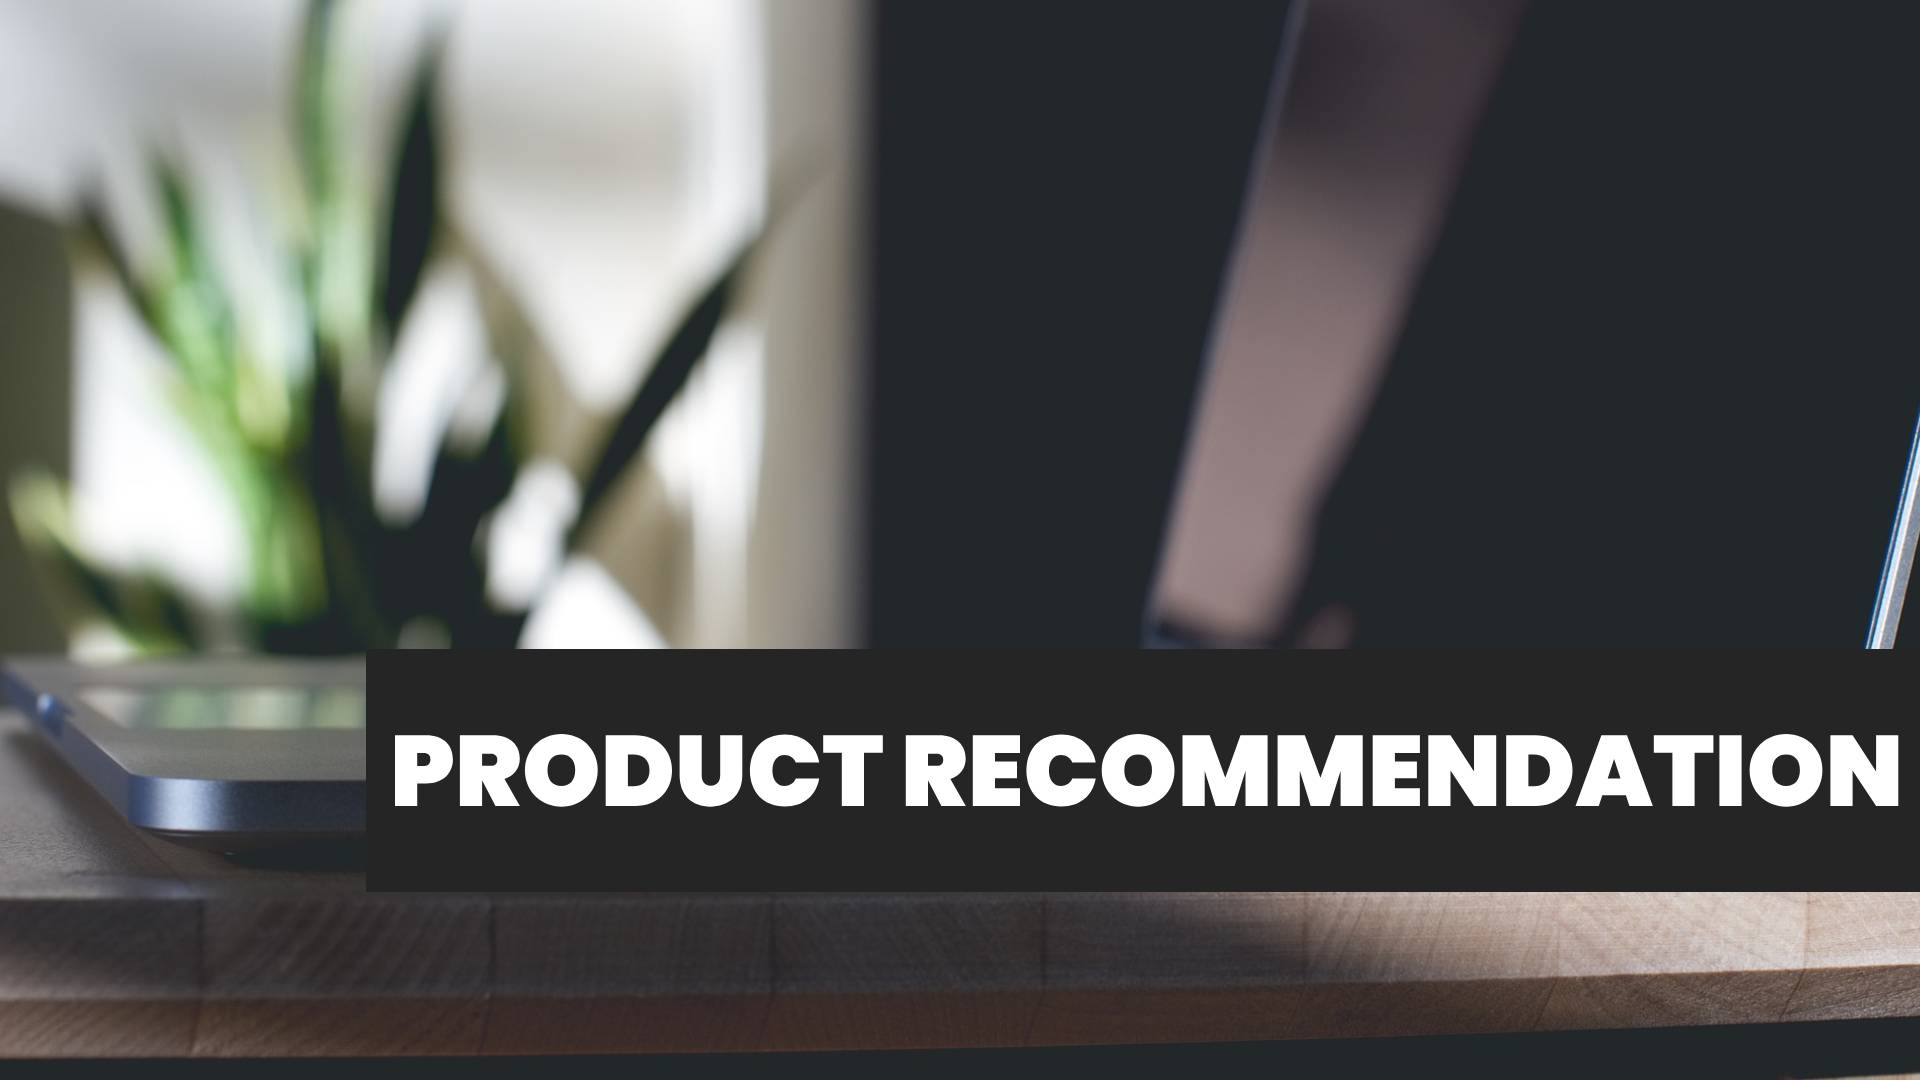 Product-Recommendation-Banner.jpg